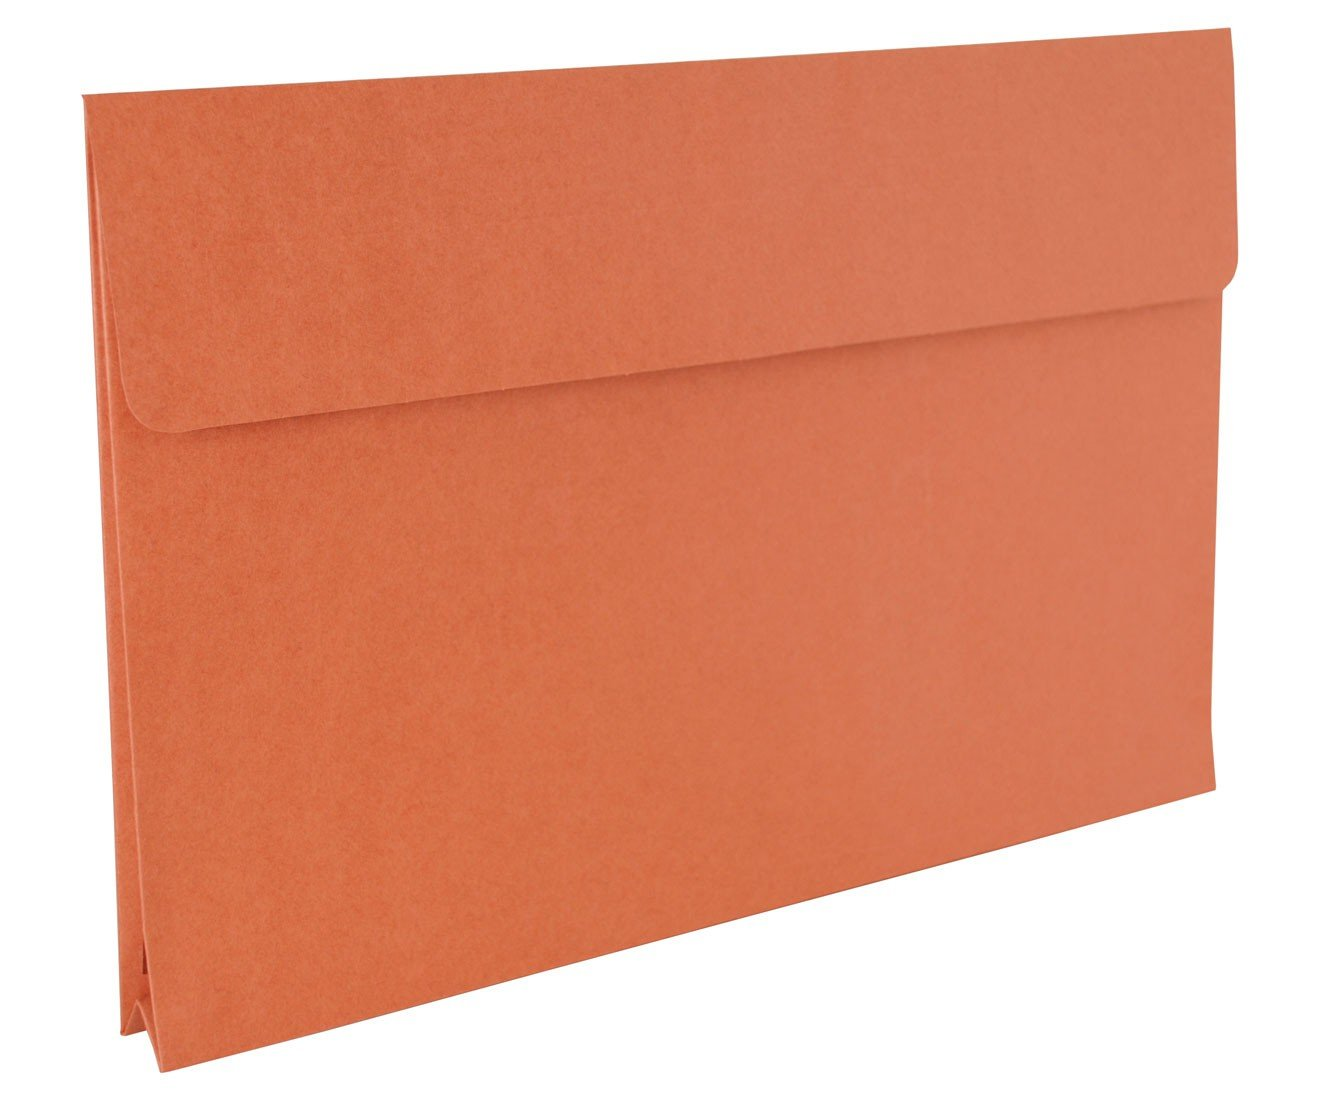 11x17 2-Inch Expanding Filing Folder, Pack of 10, Red Rope (563064) by Ruby Paulina LLC